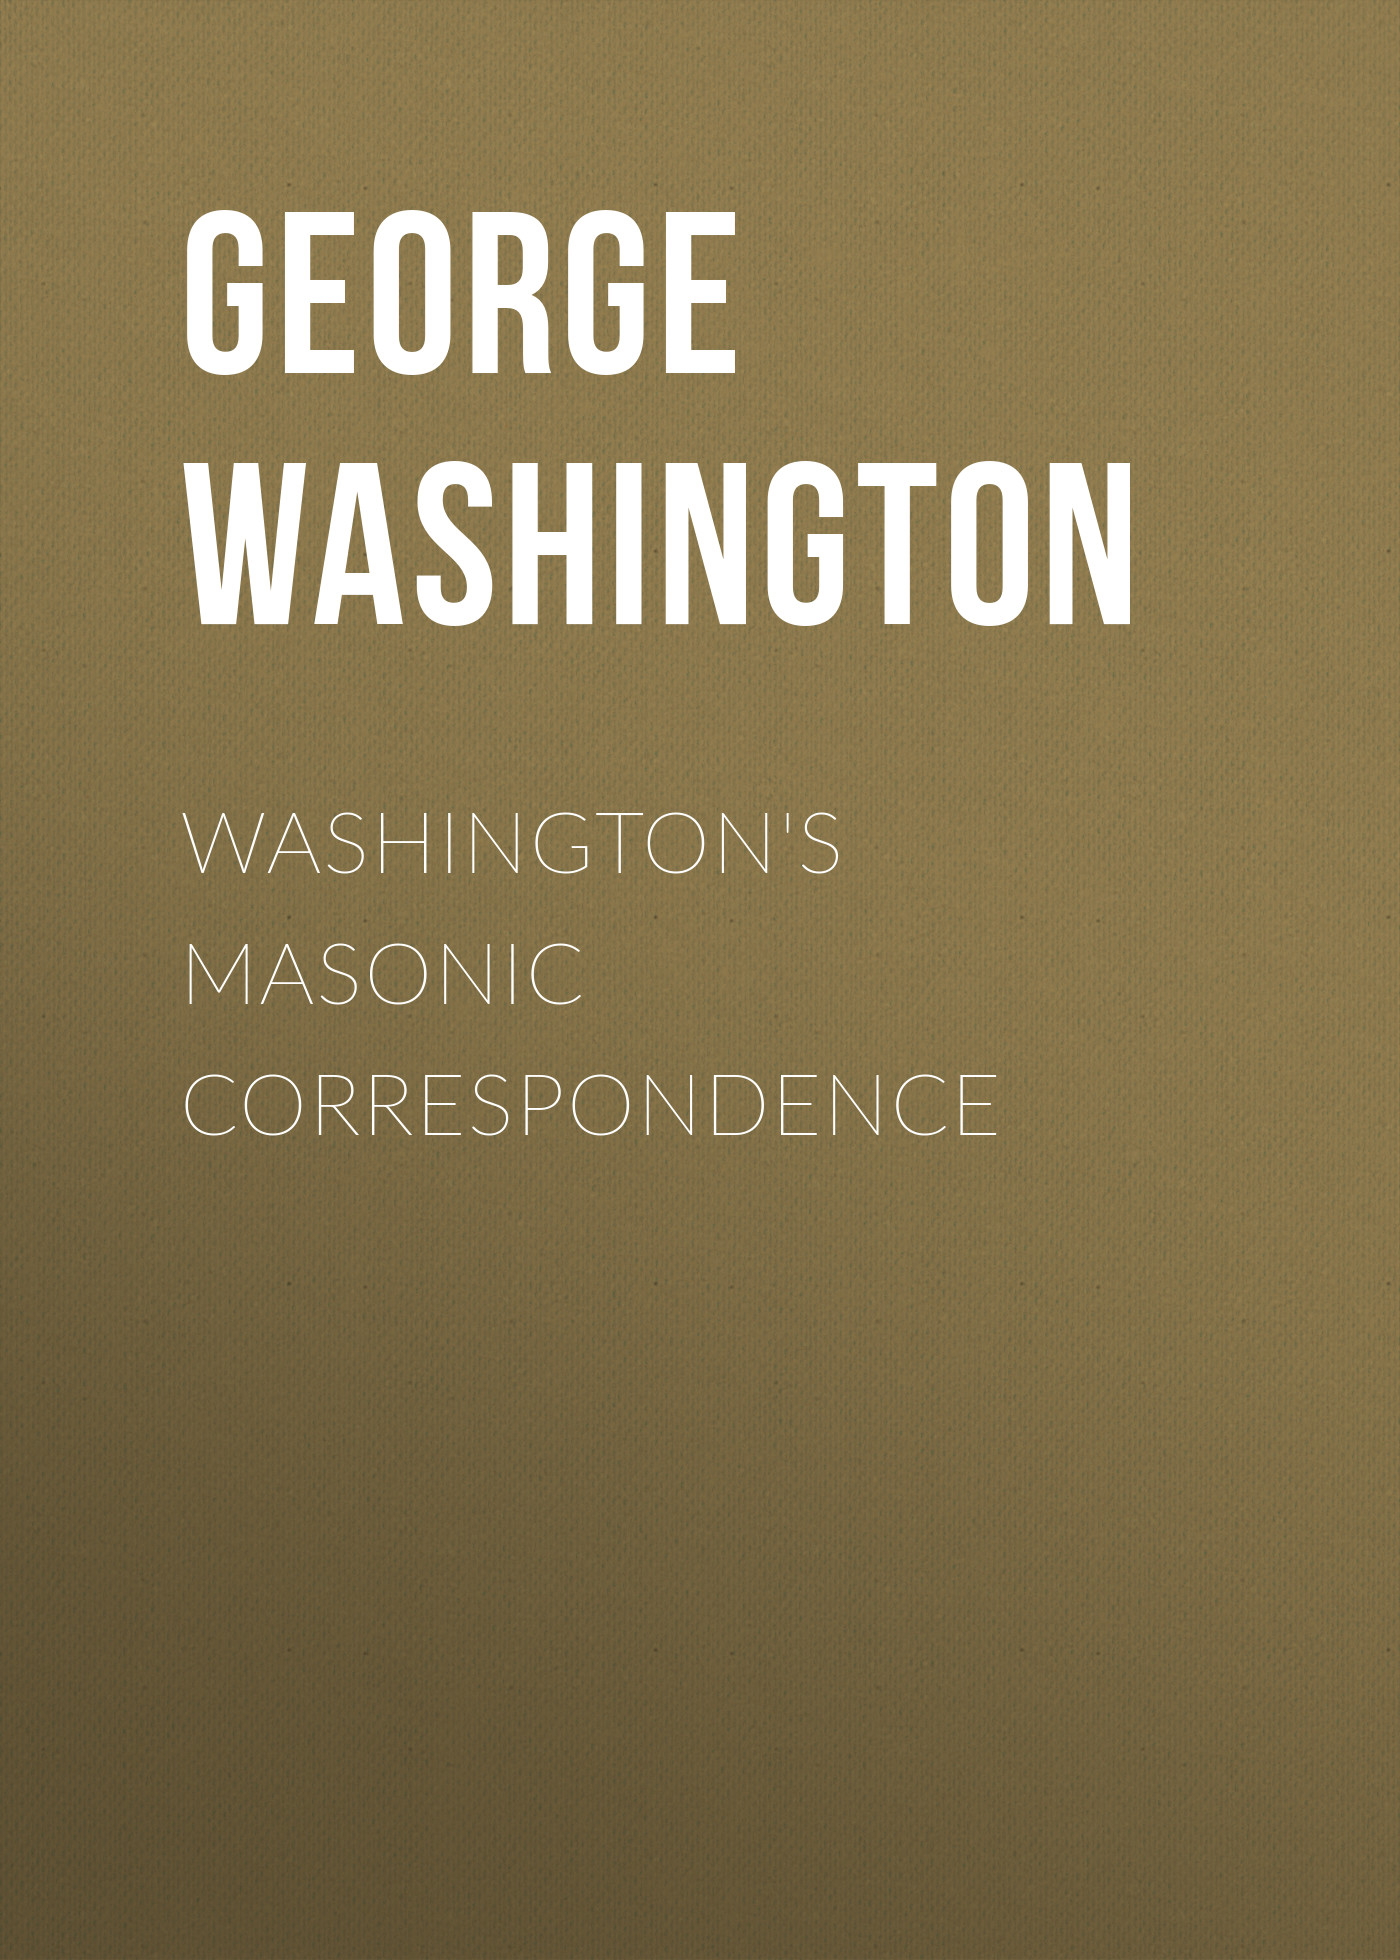 George Washington Washington's Masonic Correspondence edward lengel g a companion to george washington